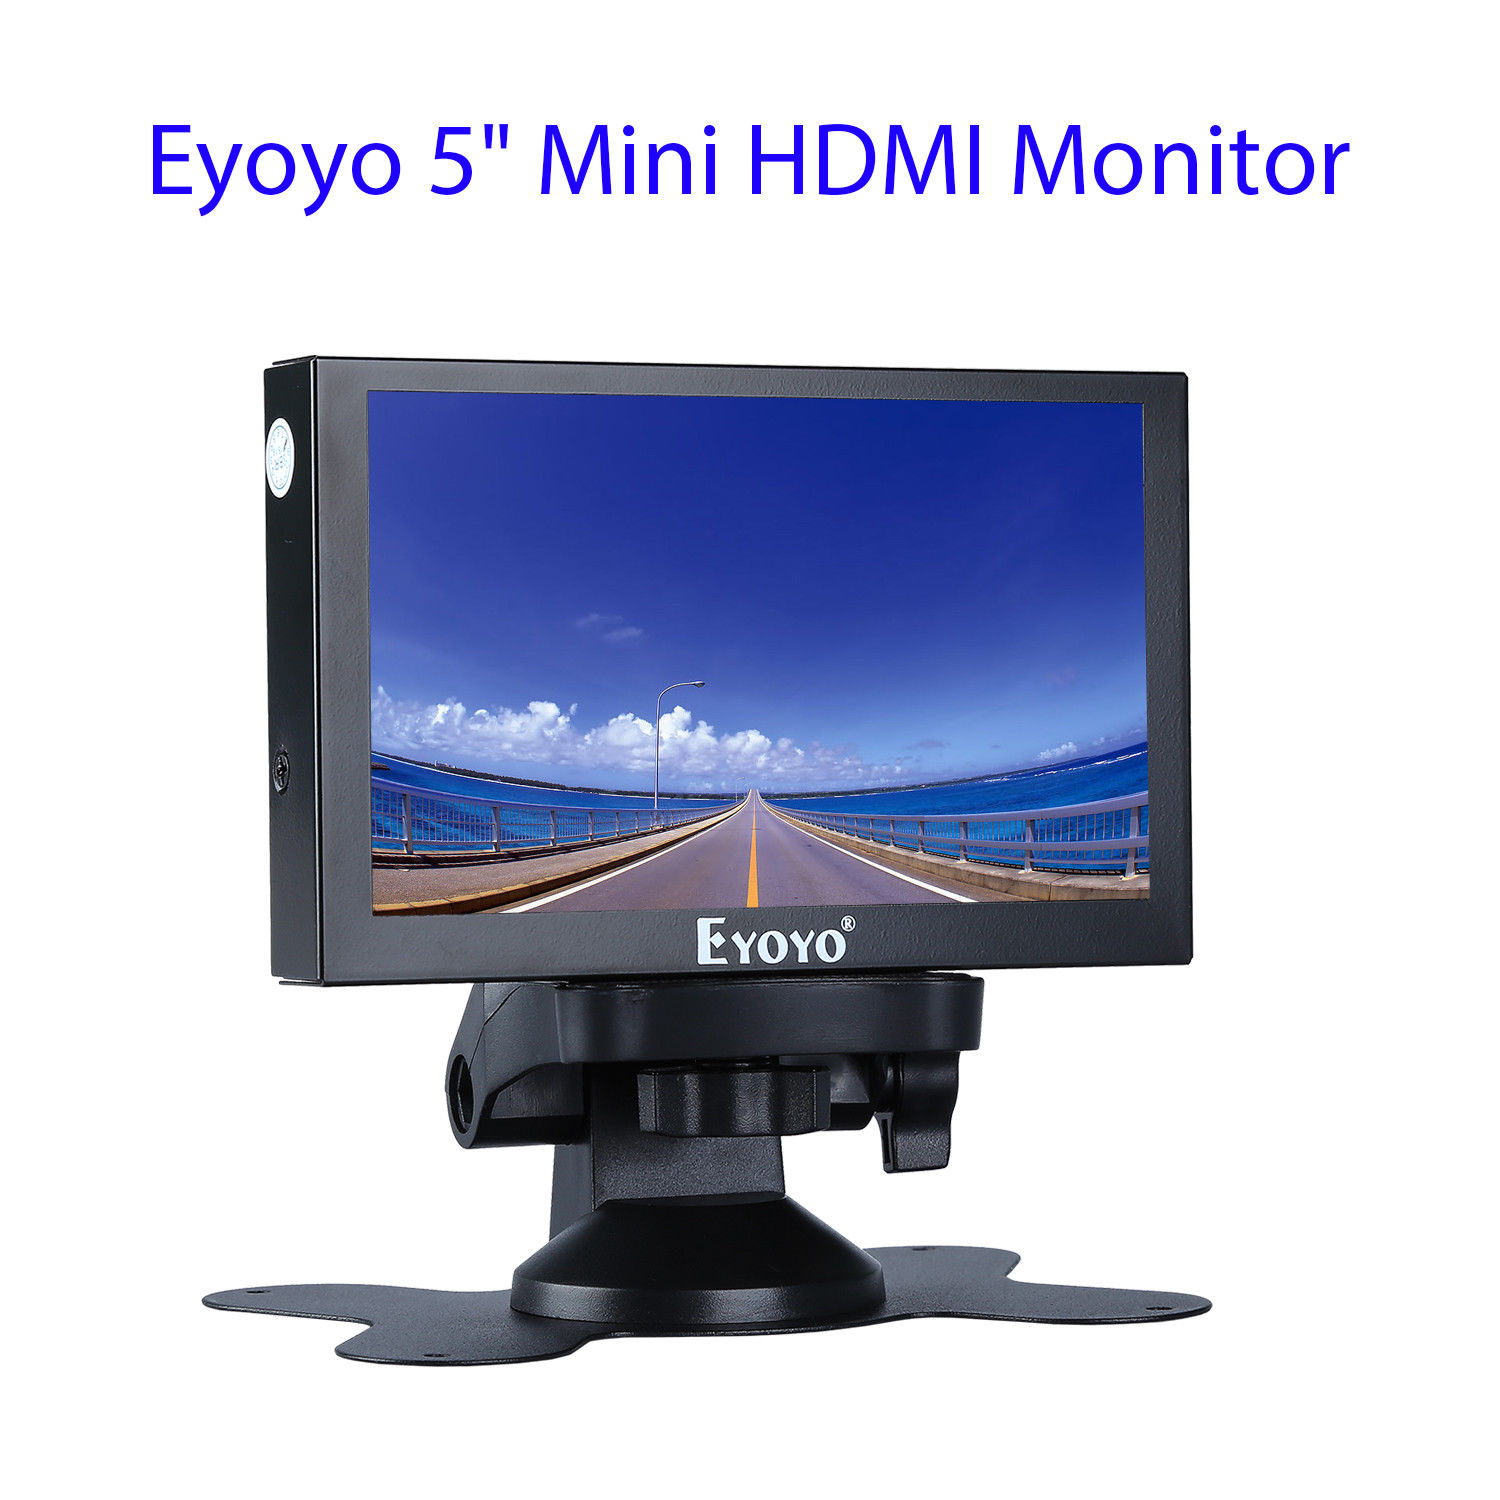 Eyoyo 5 IN MONITOR 5 Mini HDMl Monitor 800x480 Car Rear View TFT With BNC/VGA/HDMl Output Built-in Speaker LCD Screen DisplayEyoyo 5 IN MONITOR 5 Mini HDMl Monitor 800x480 Car Rear View TFT With BNC/VGA/HDMl Output Built-in Speaker LCD Screen Display